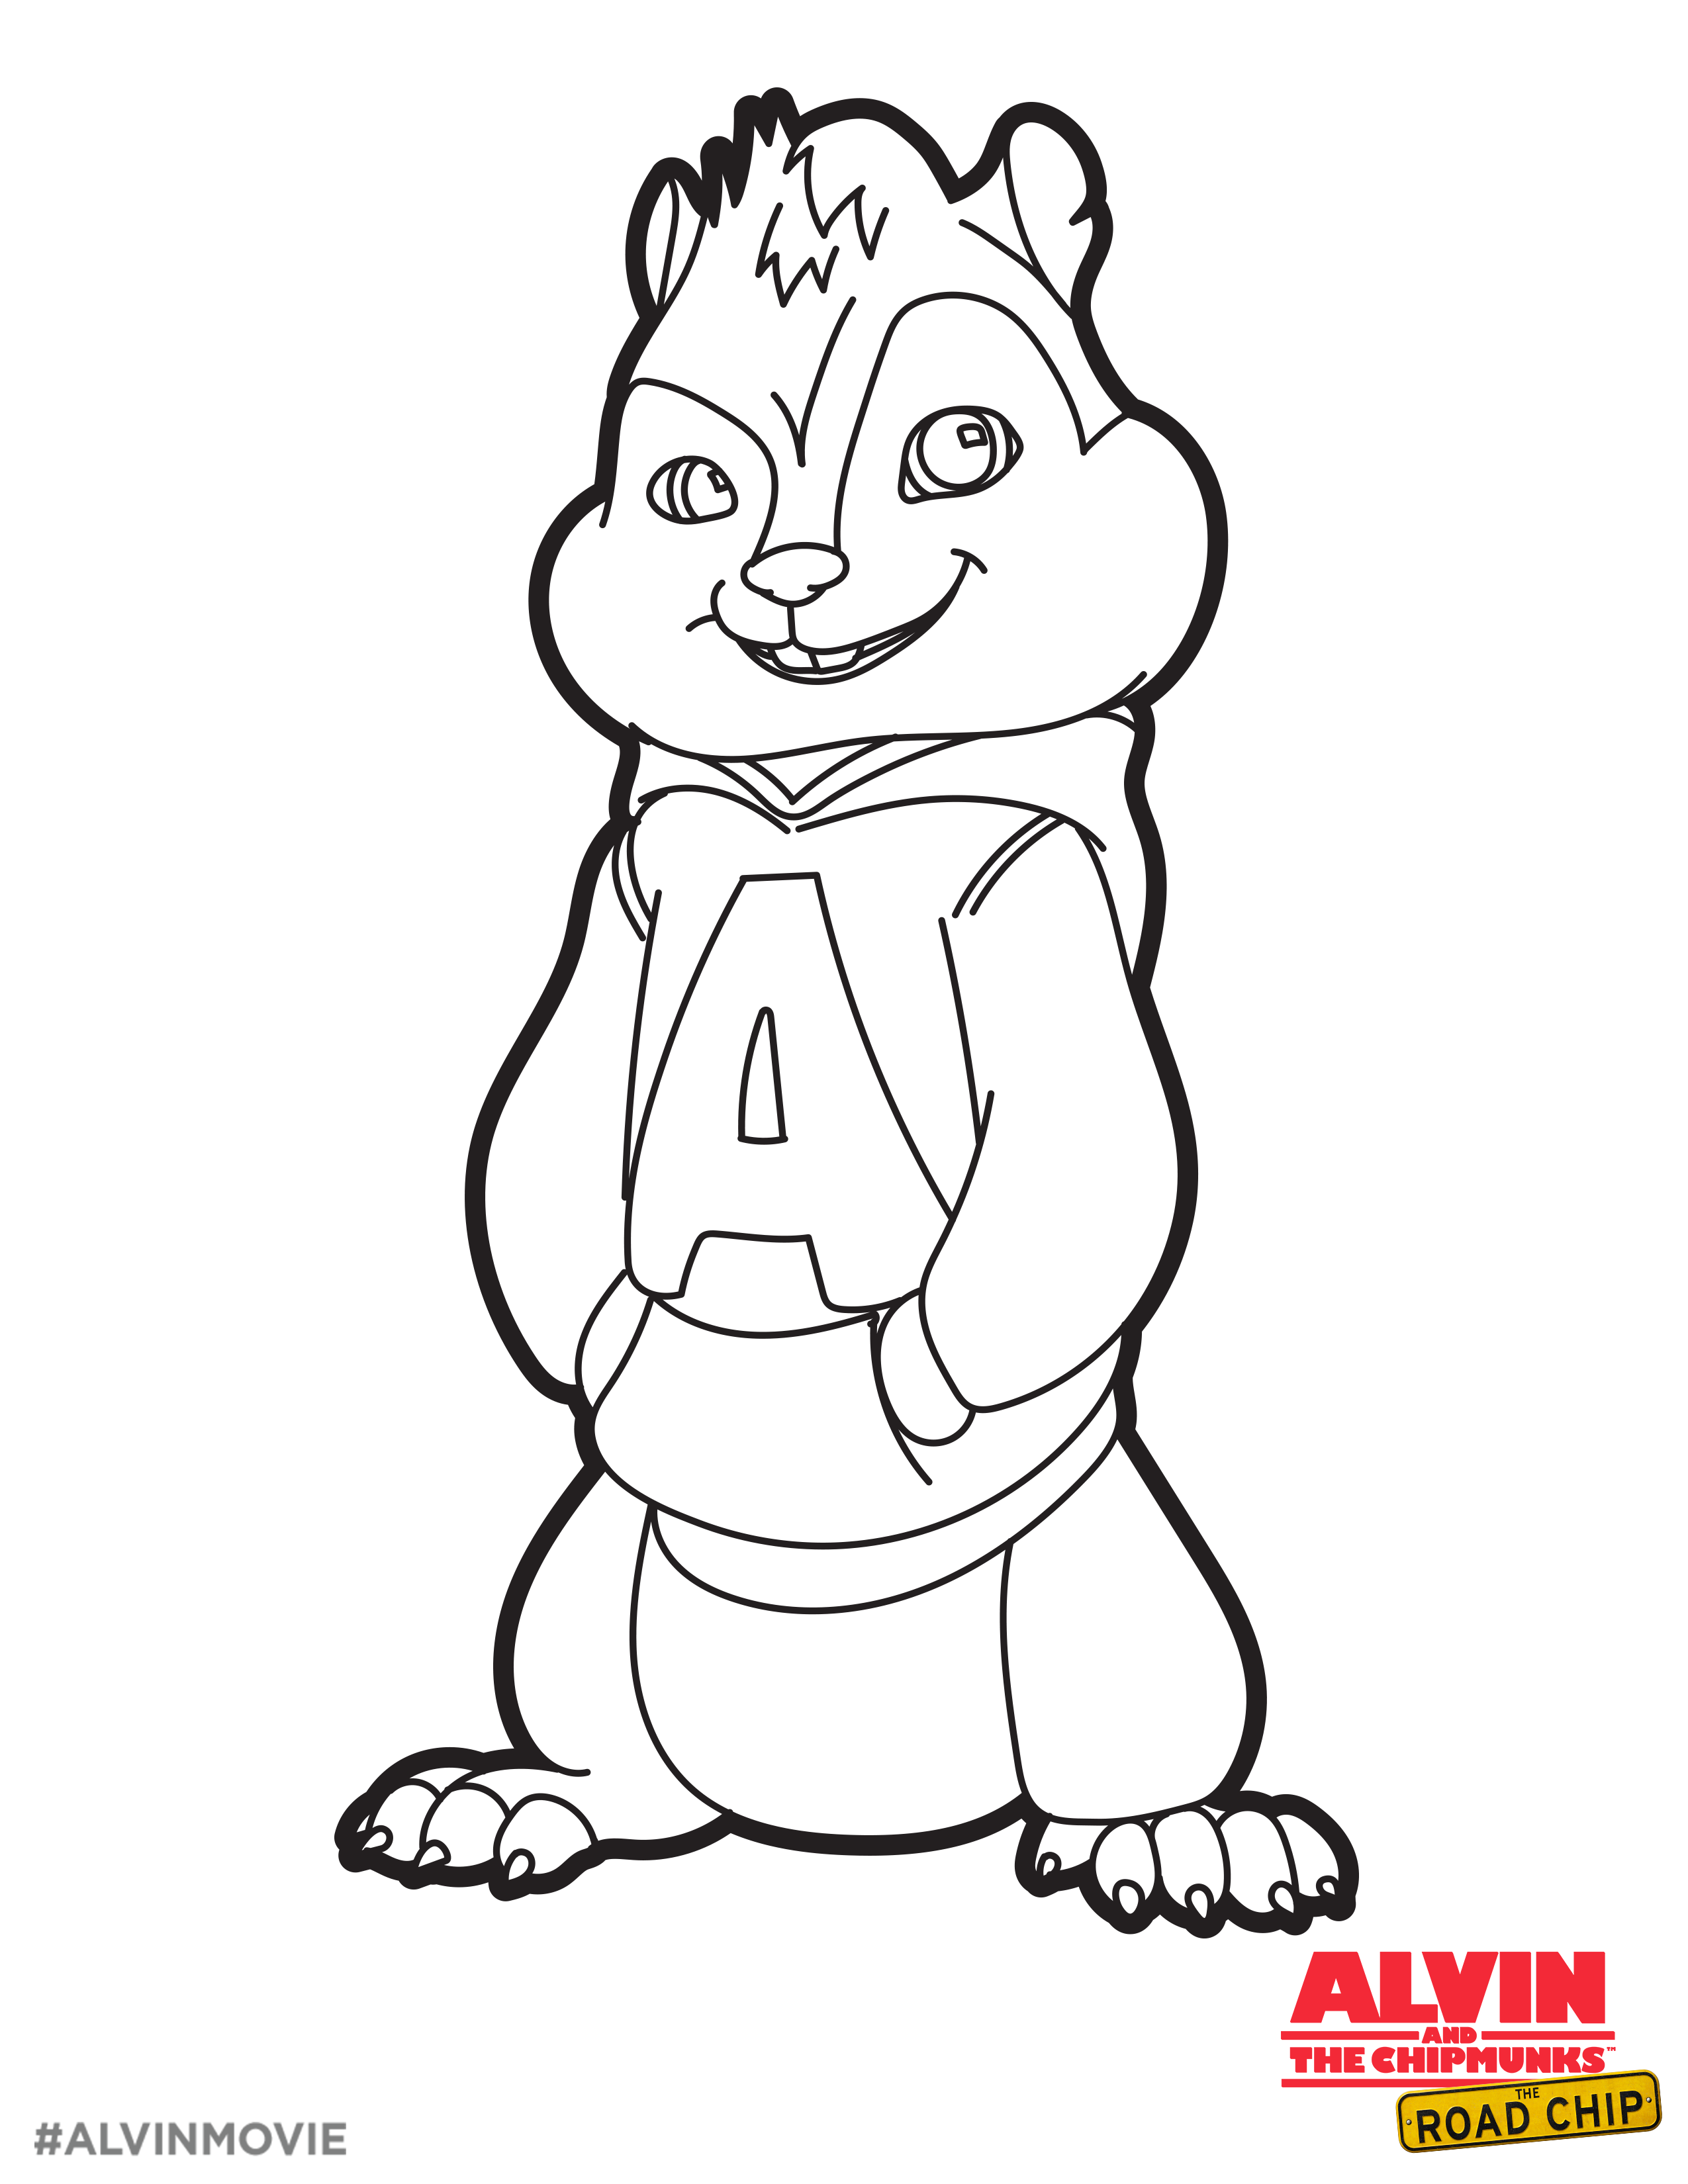 Free Alvin Coloring Printable Perfect For A Road Trip Alvin And The Chipmunks The Road Cartoon Coloring Pages Disney Princess Colors Alvin And The Chipmunks